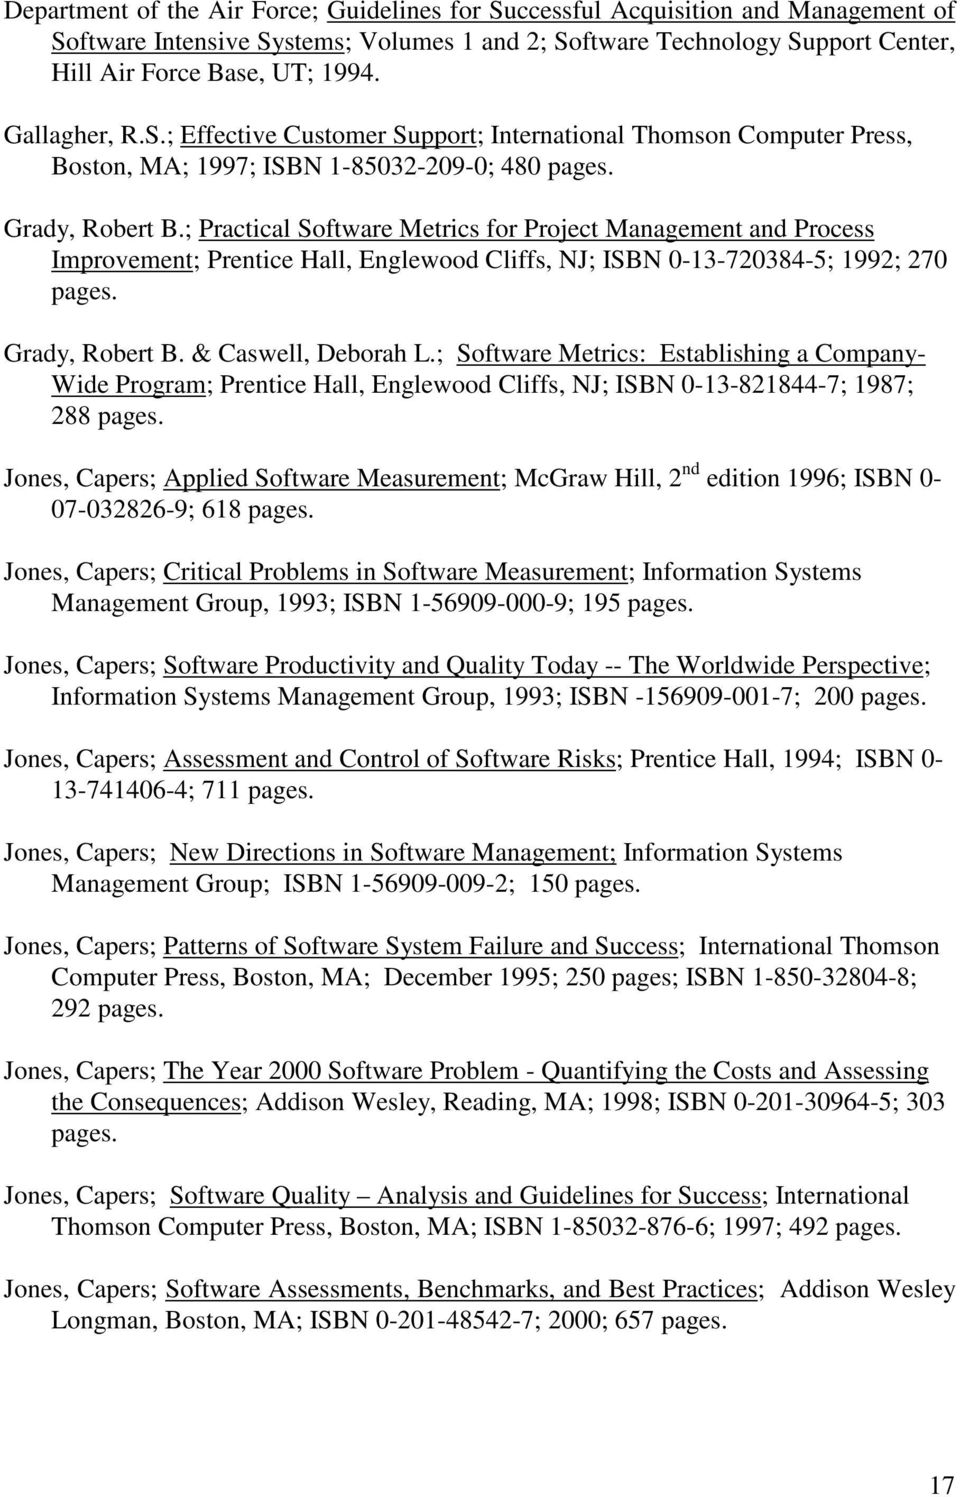 ; Practical Software Metrics for Project Management and Process Improvement; Prentice Hall, Englewood Cliffs, NJ; ISBN 0-13-720384-5; 1992; 270 pages. Grady, Robert B. & Caswell, Deborah L.